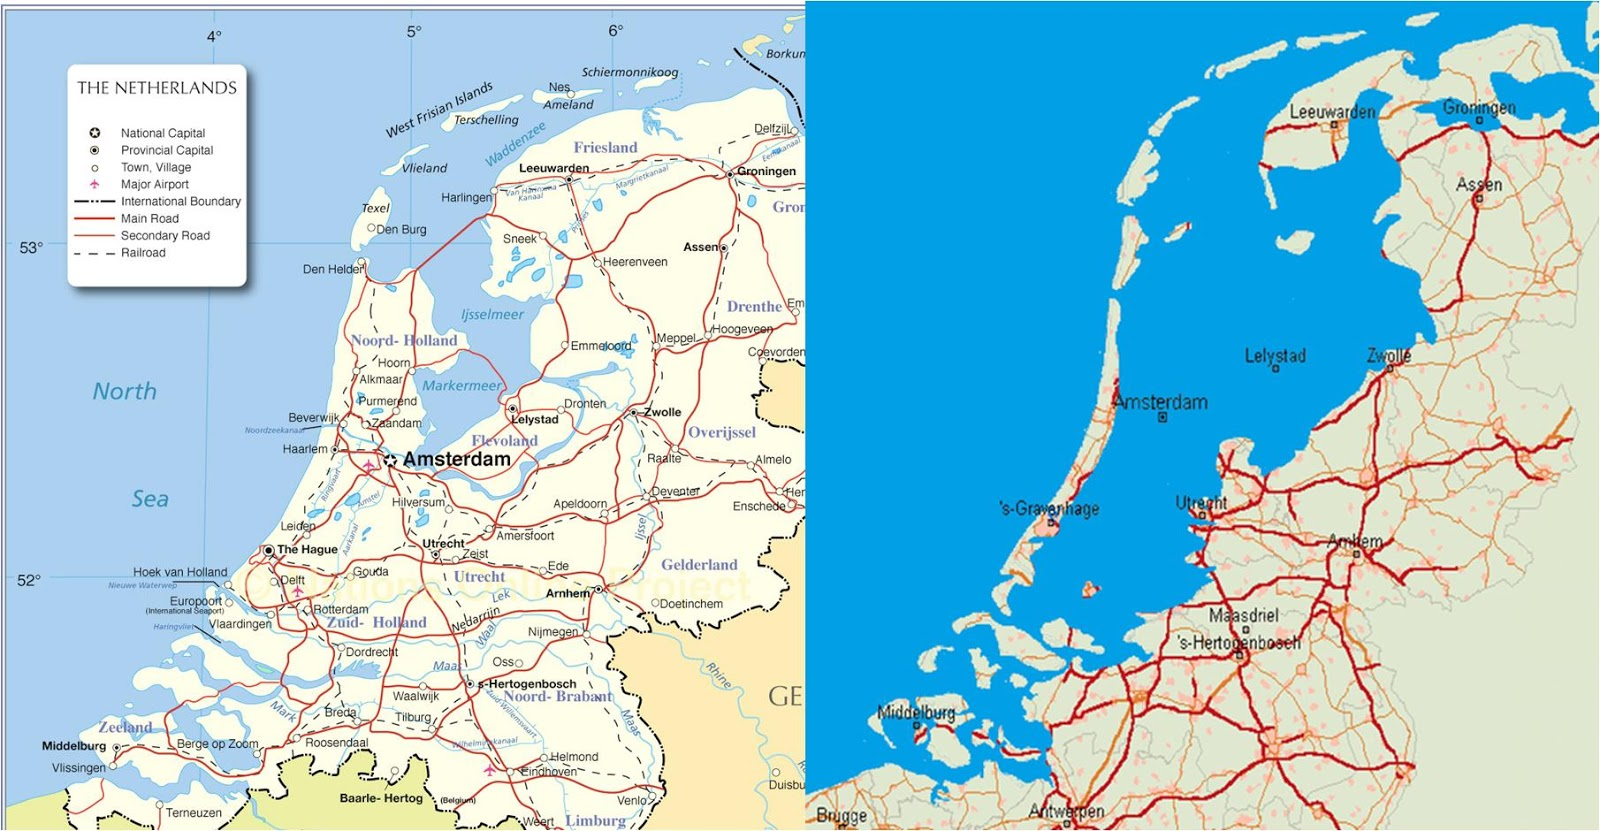 The Netherlands & The Netherlands without dikes